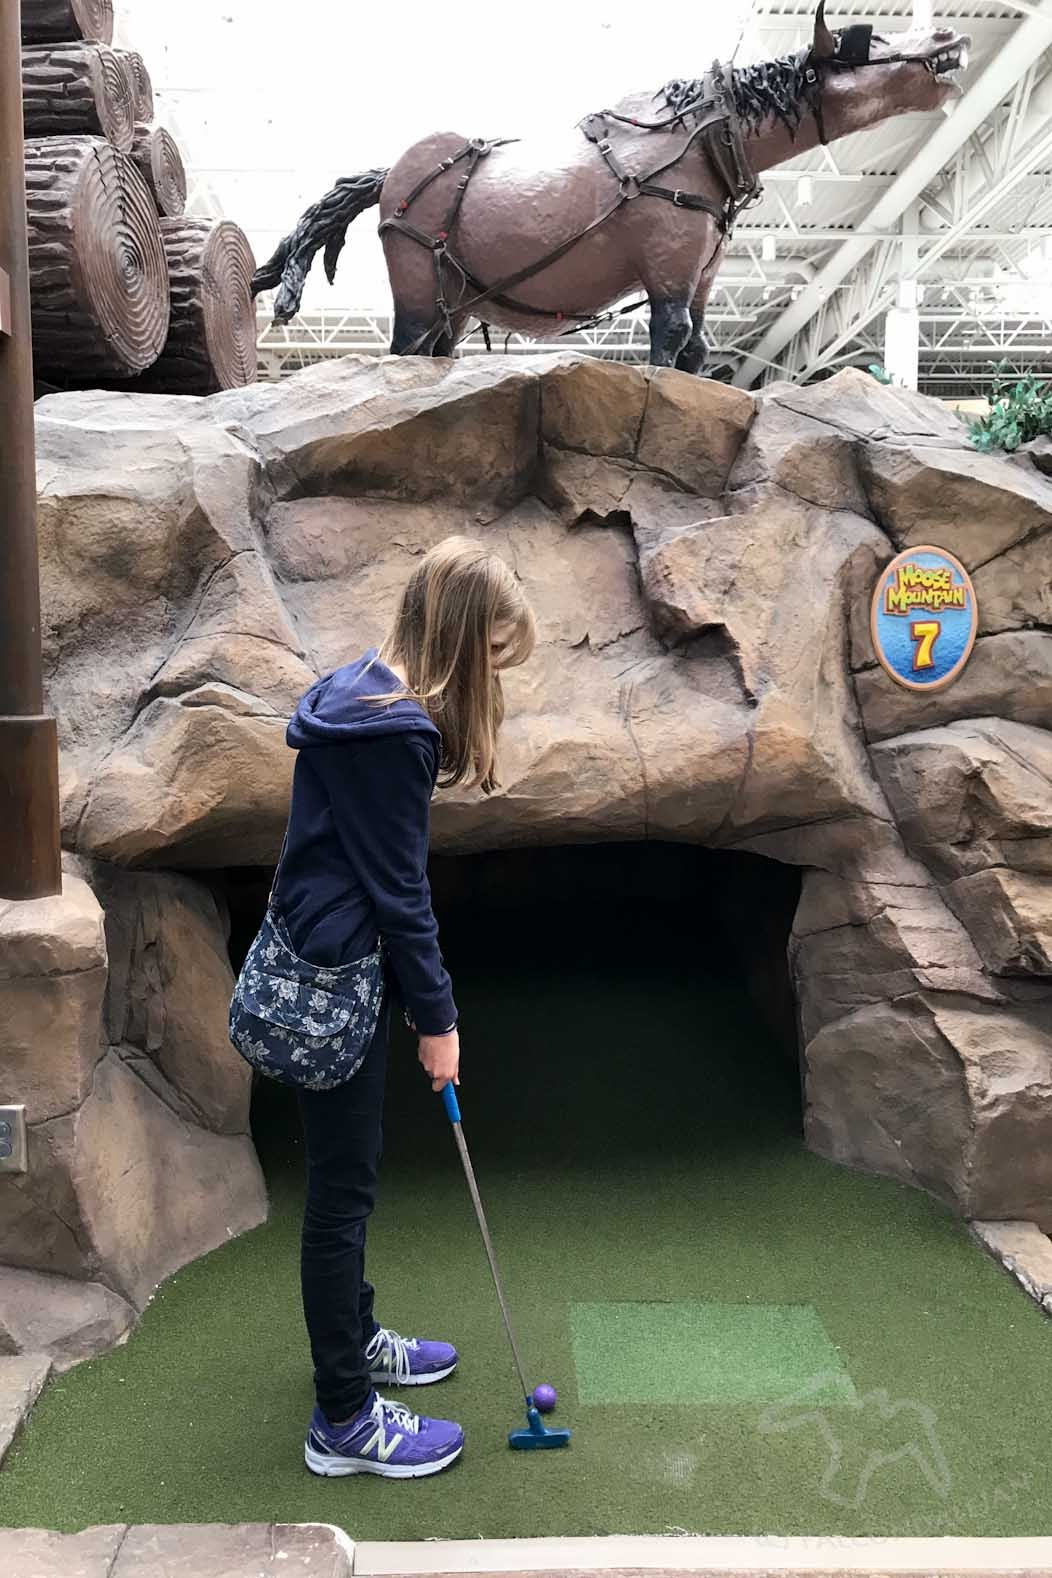 Mall of America, Minneapolis: Destination Thrill on FalcondaleLife blog. The biggest shopping mall in America also has a theme park and many other thrilling attractions to make it a tourist destination in its own right. Moose Mountain adventure golf.